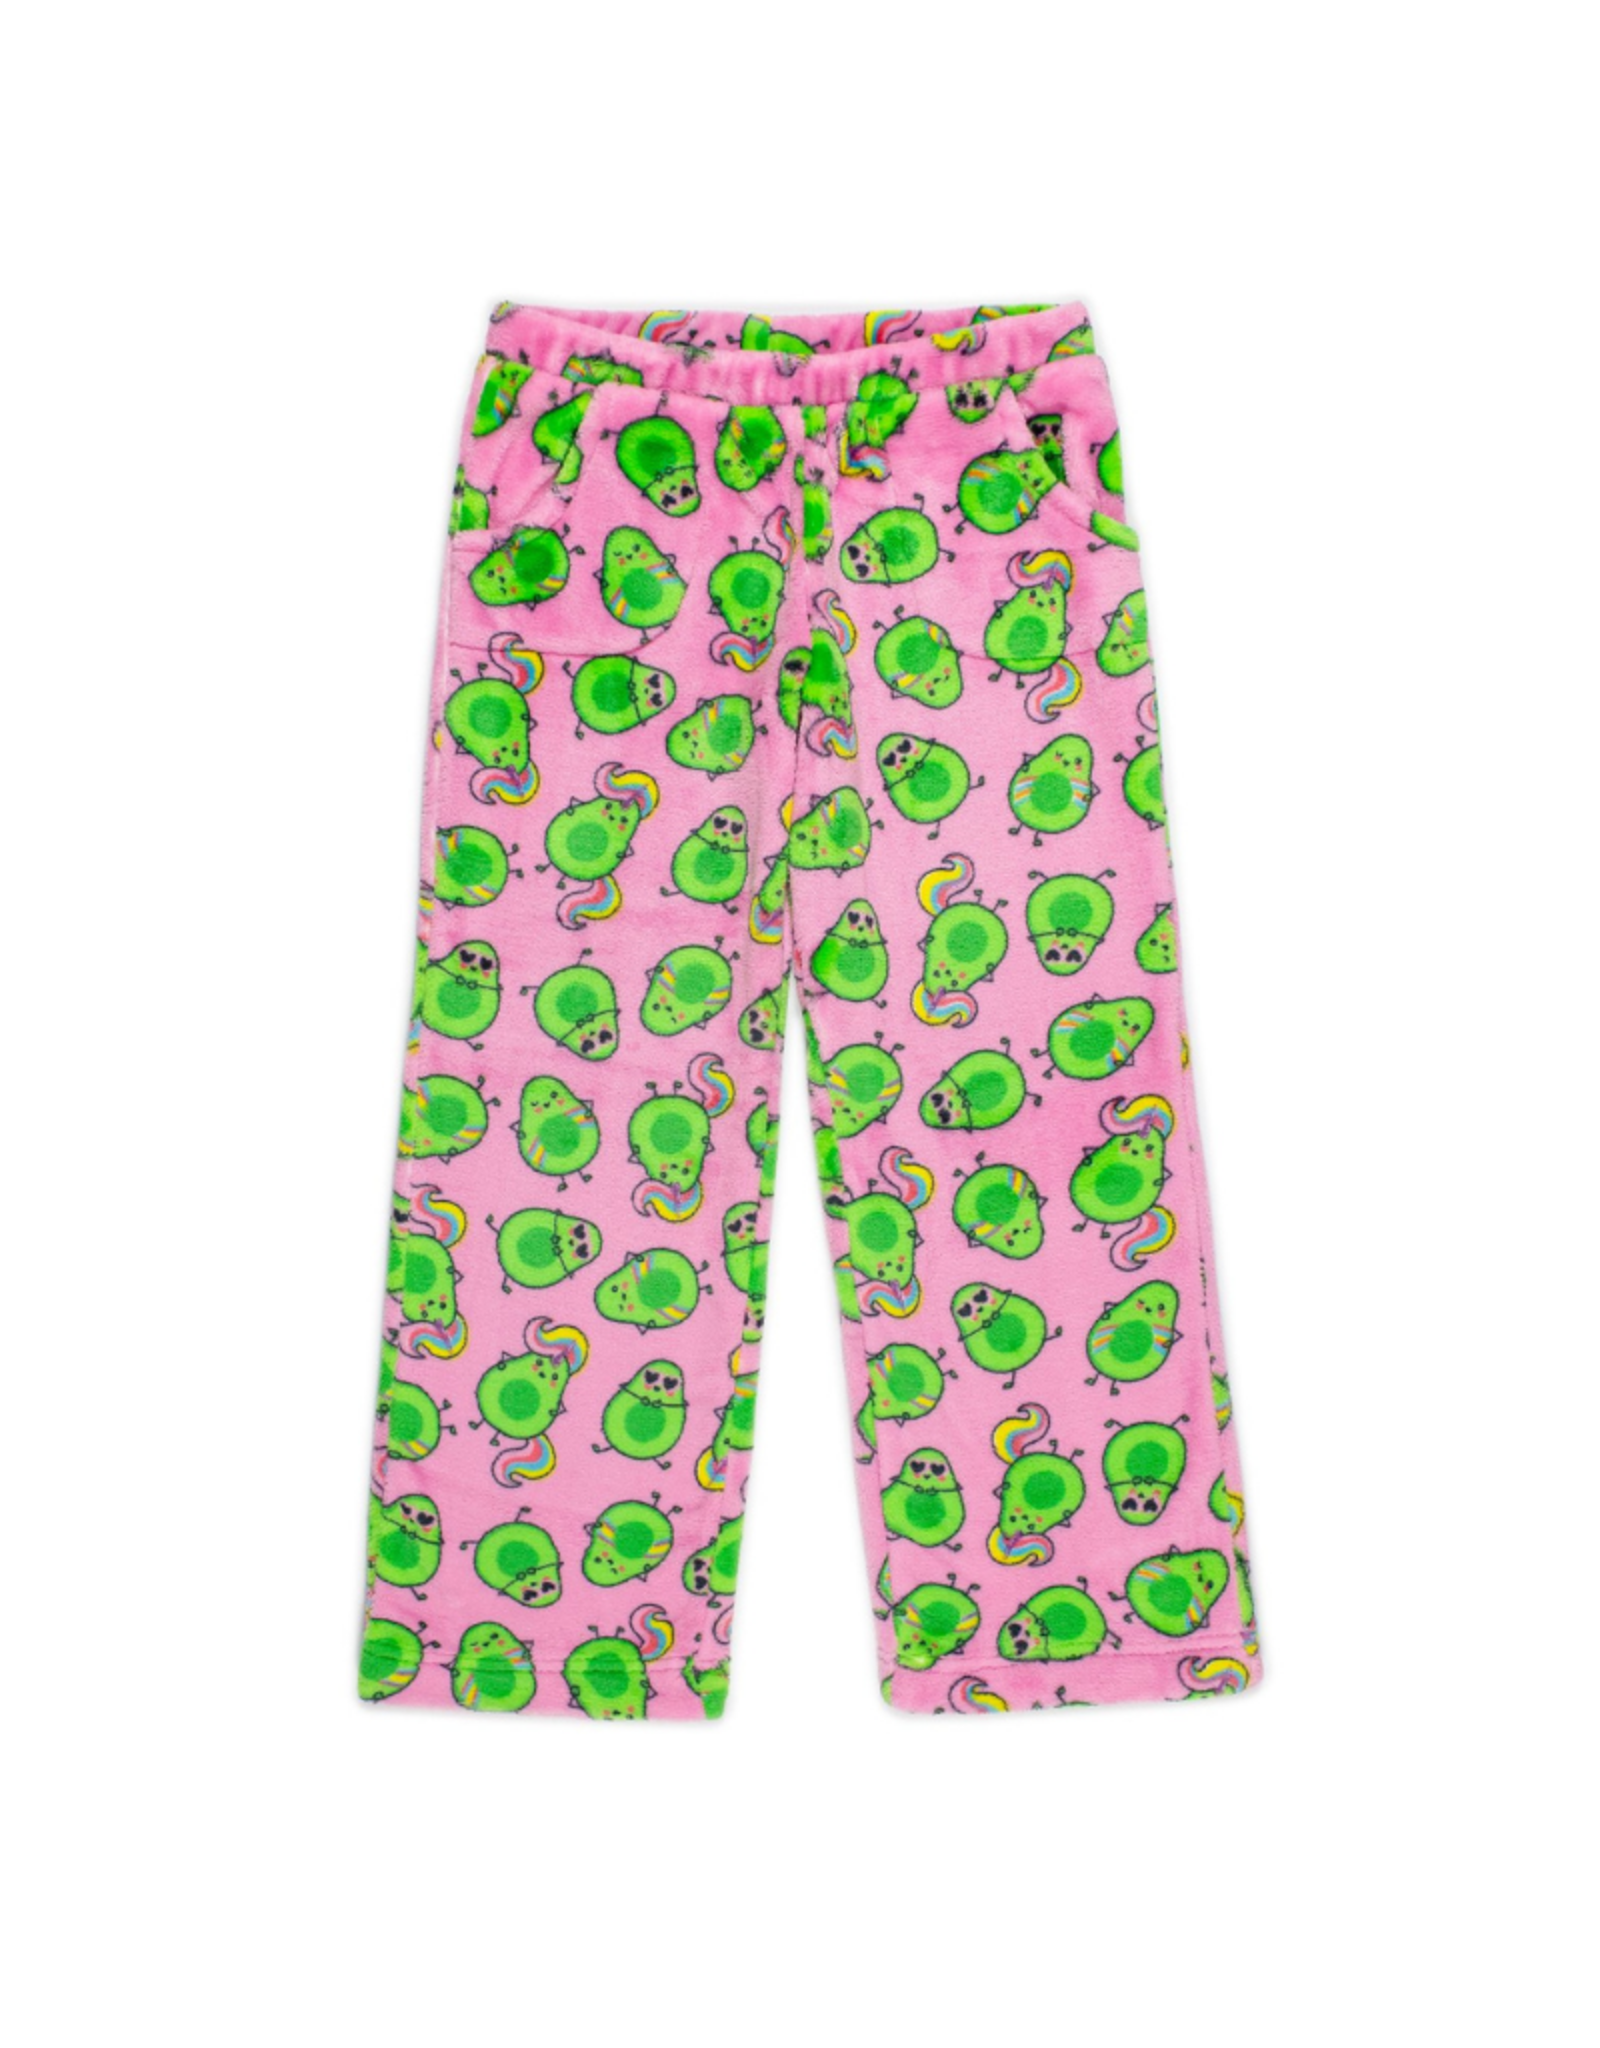 Candy Pink Fleece Pants  Avocado